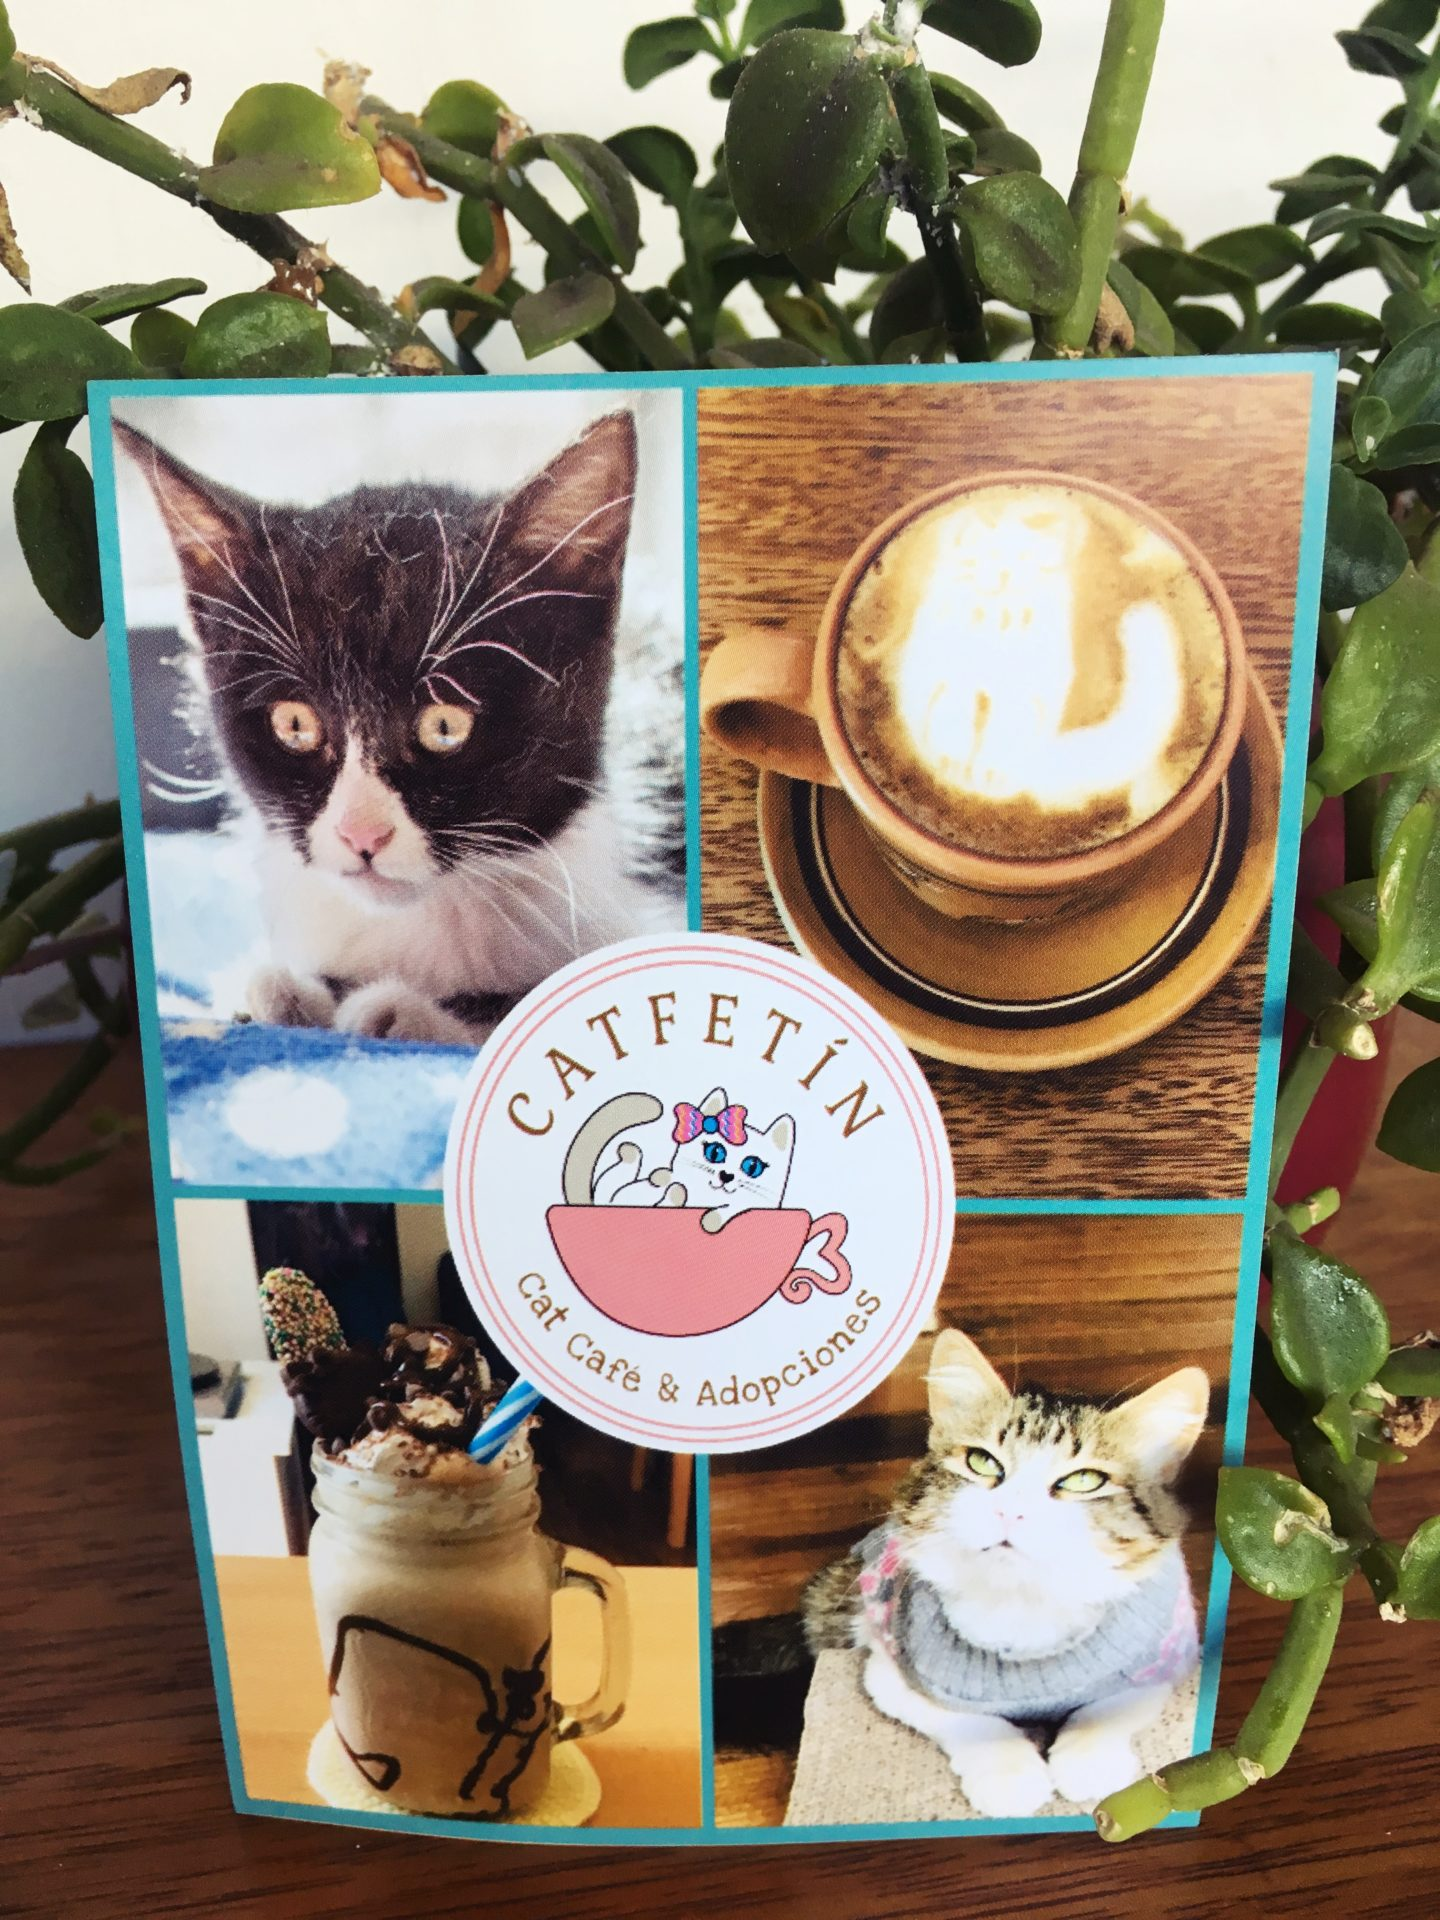 Cat, Cafe, Cafeteria, Cafetin, ペルー, クスコ, ねこ, カフェ